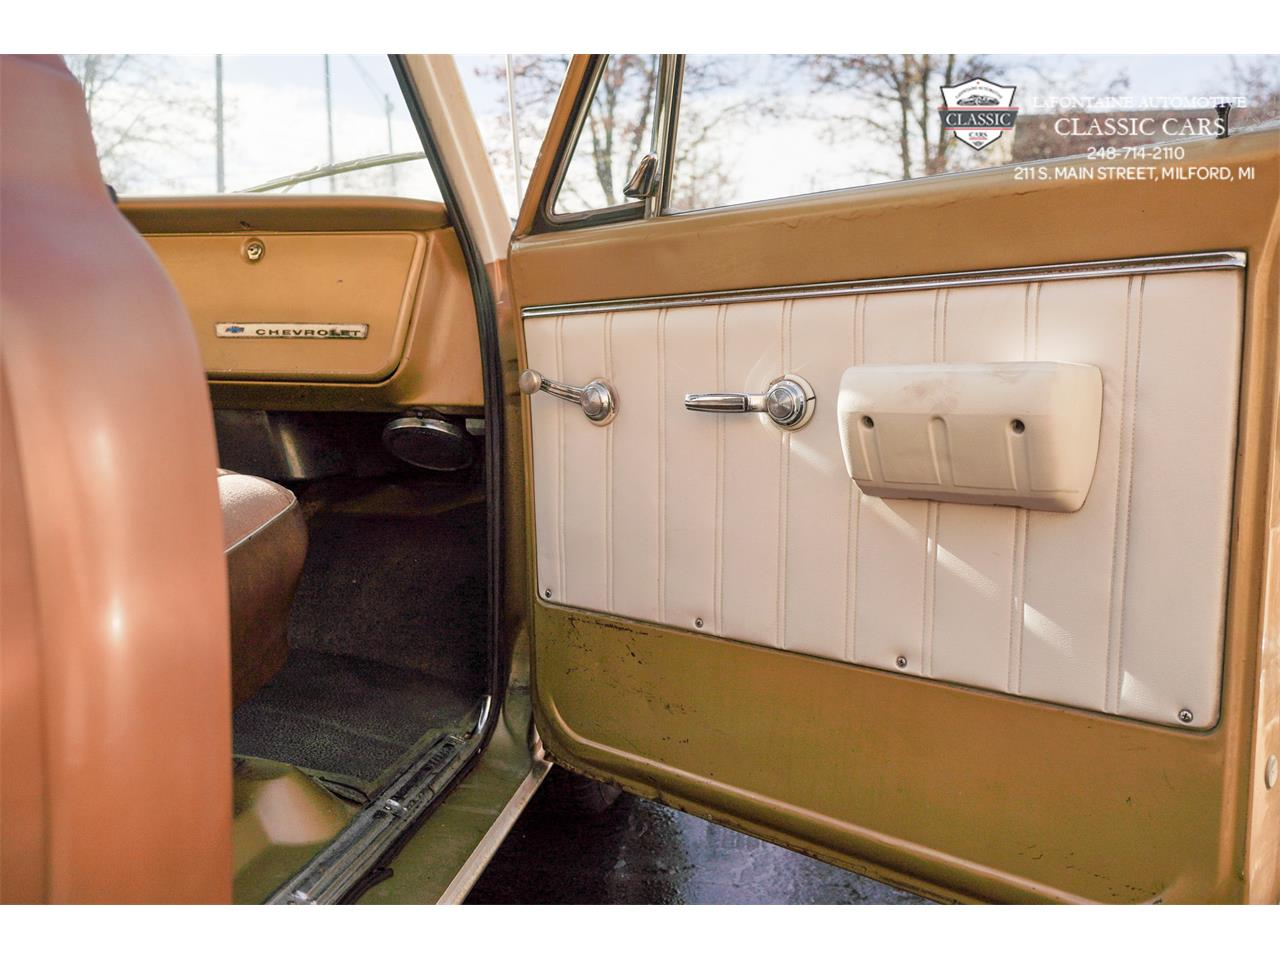 1968 Chevrolet Custom 10 (CC-1418993) for sale in Milford, Michigan